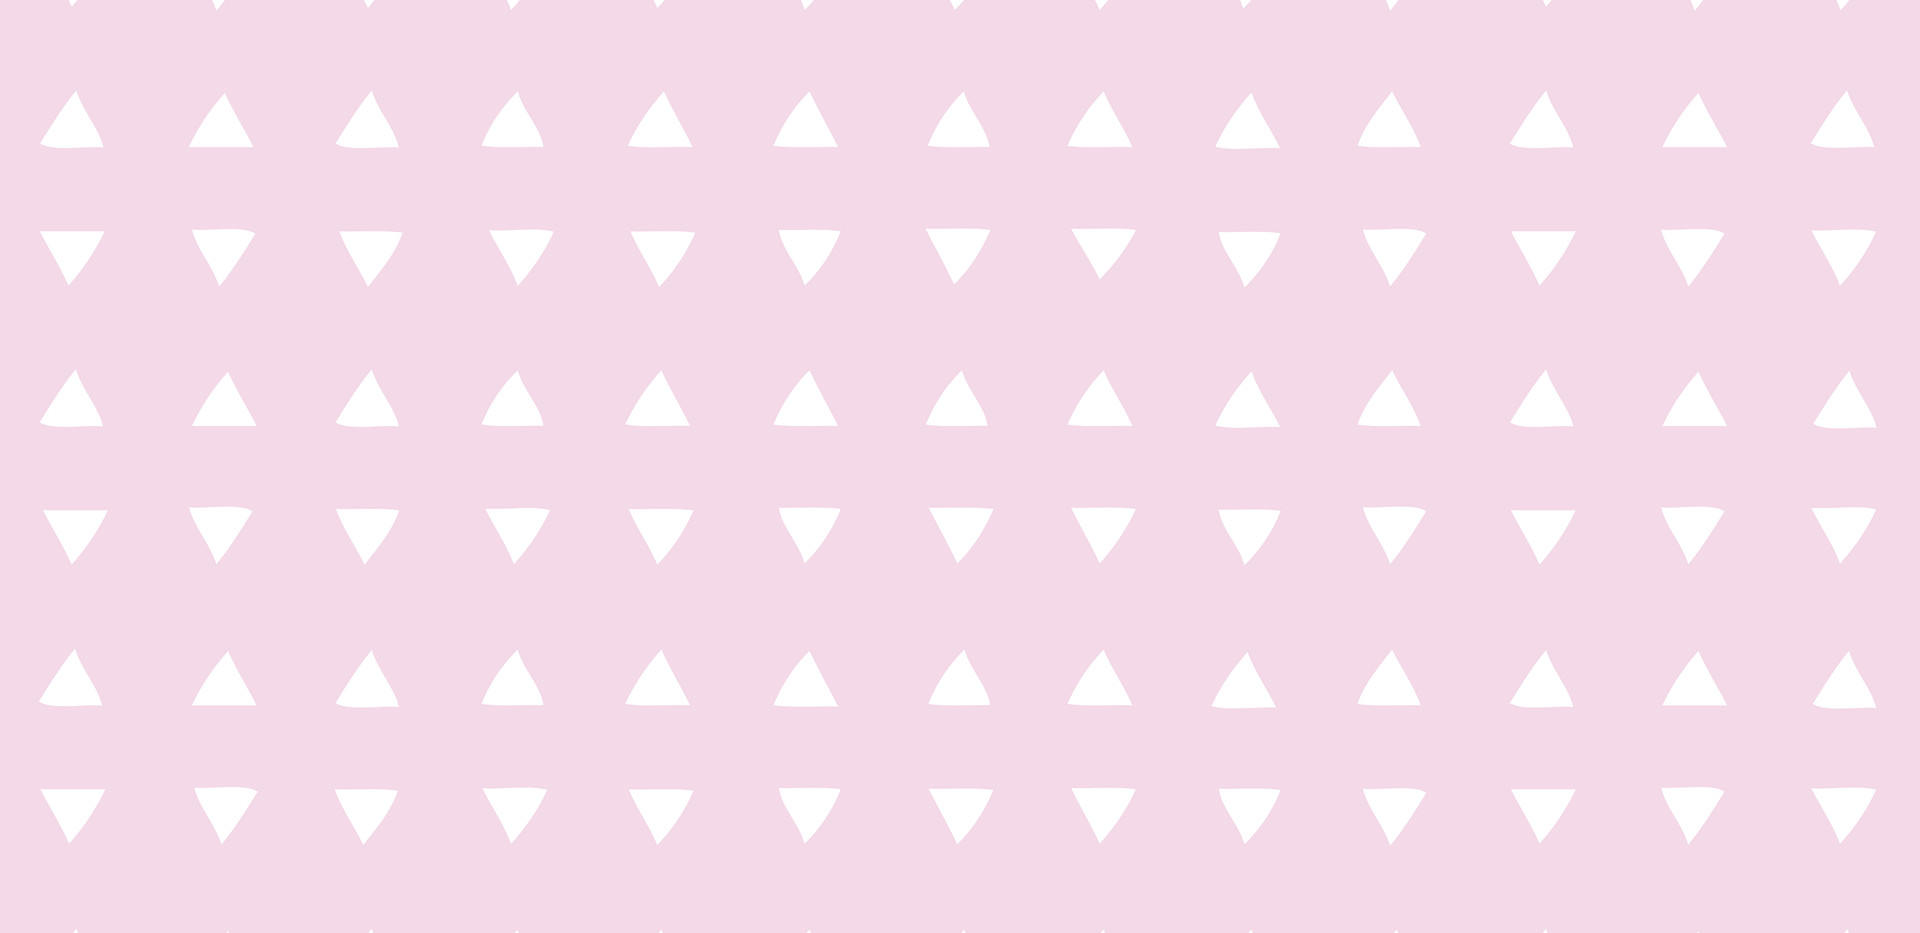 Tiny Triangles . Pretty Pink